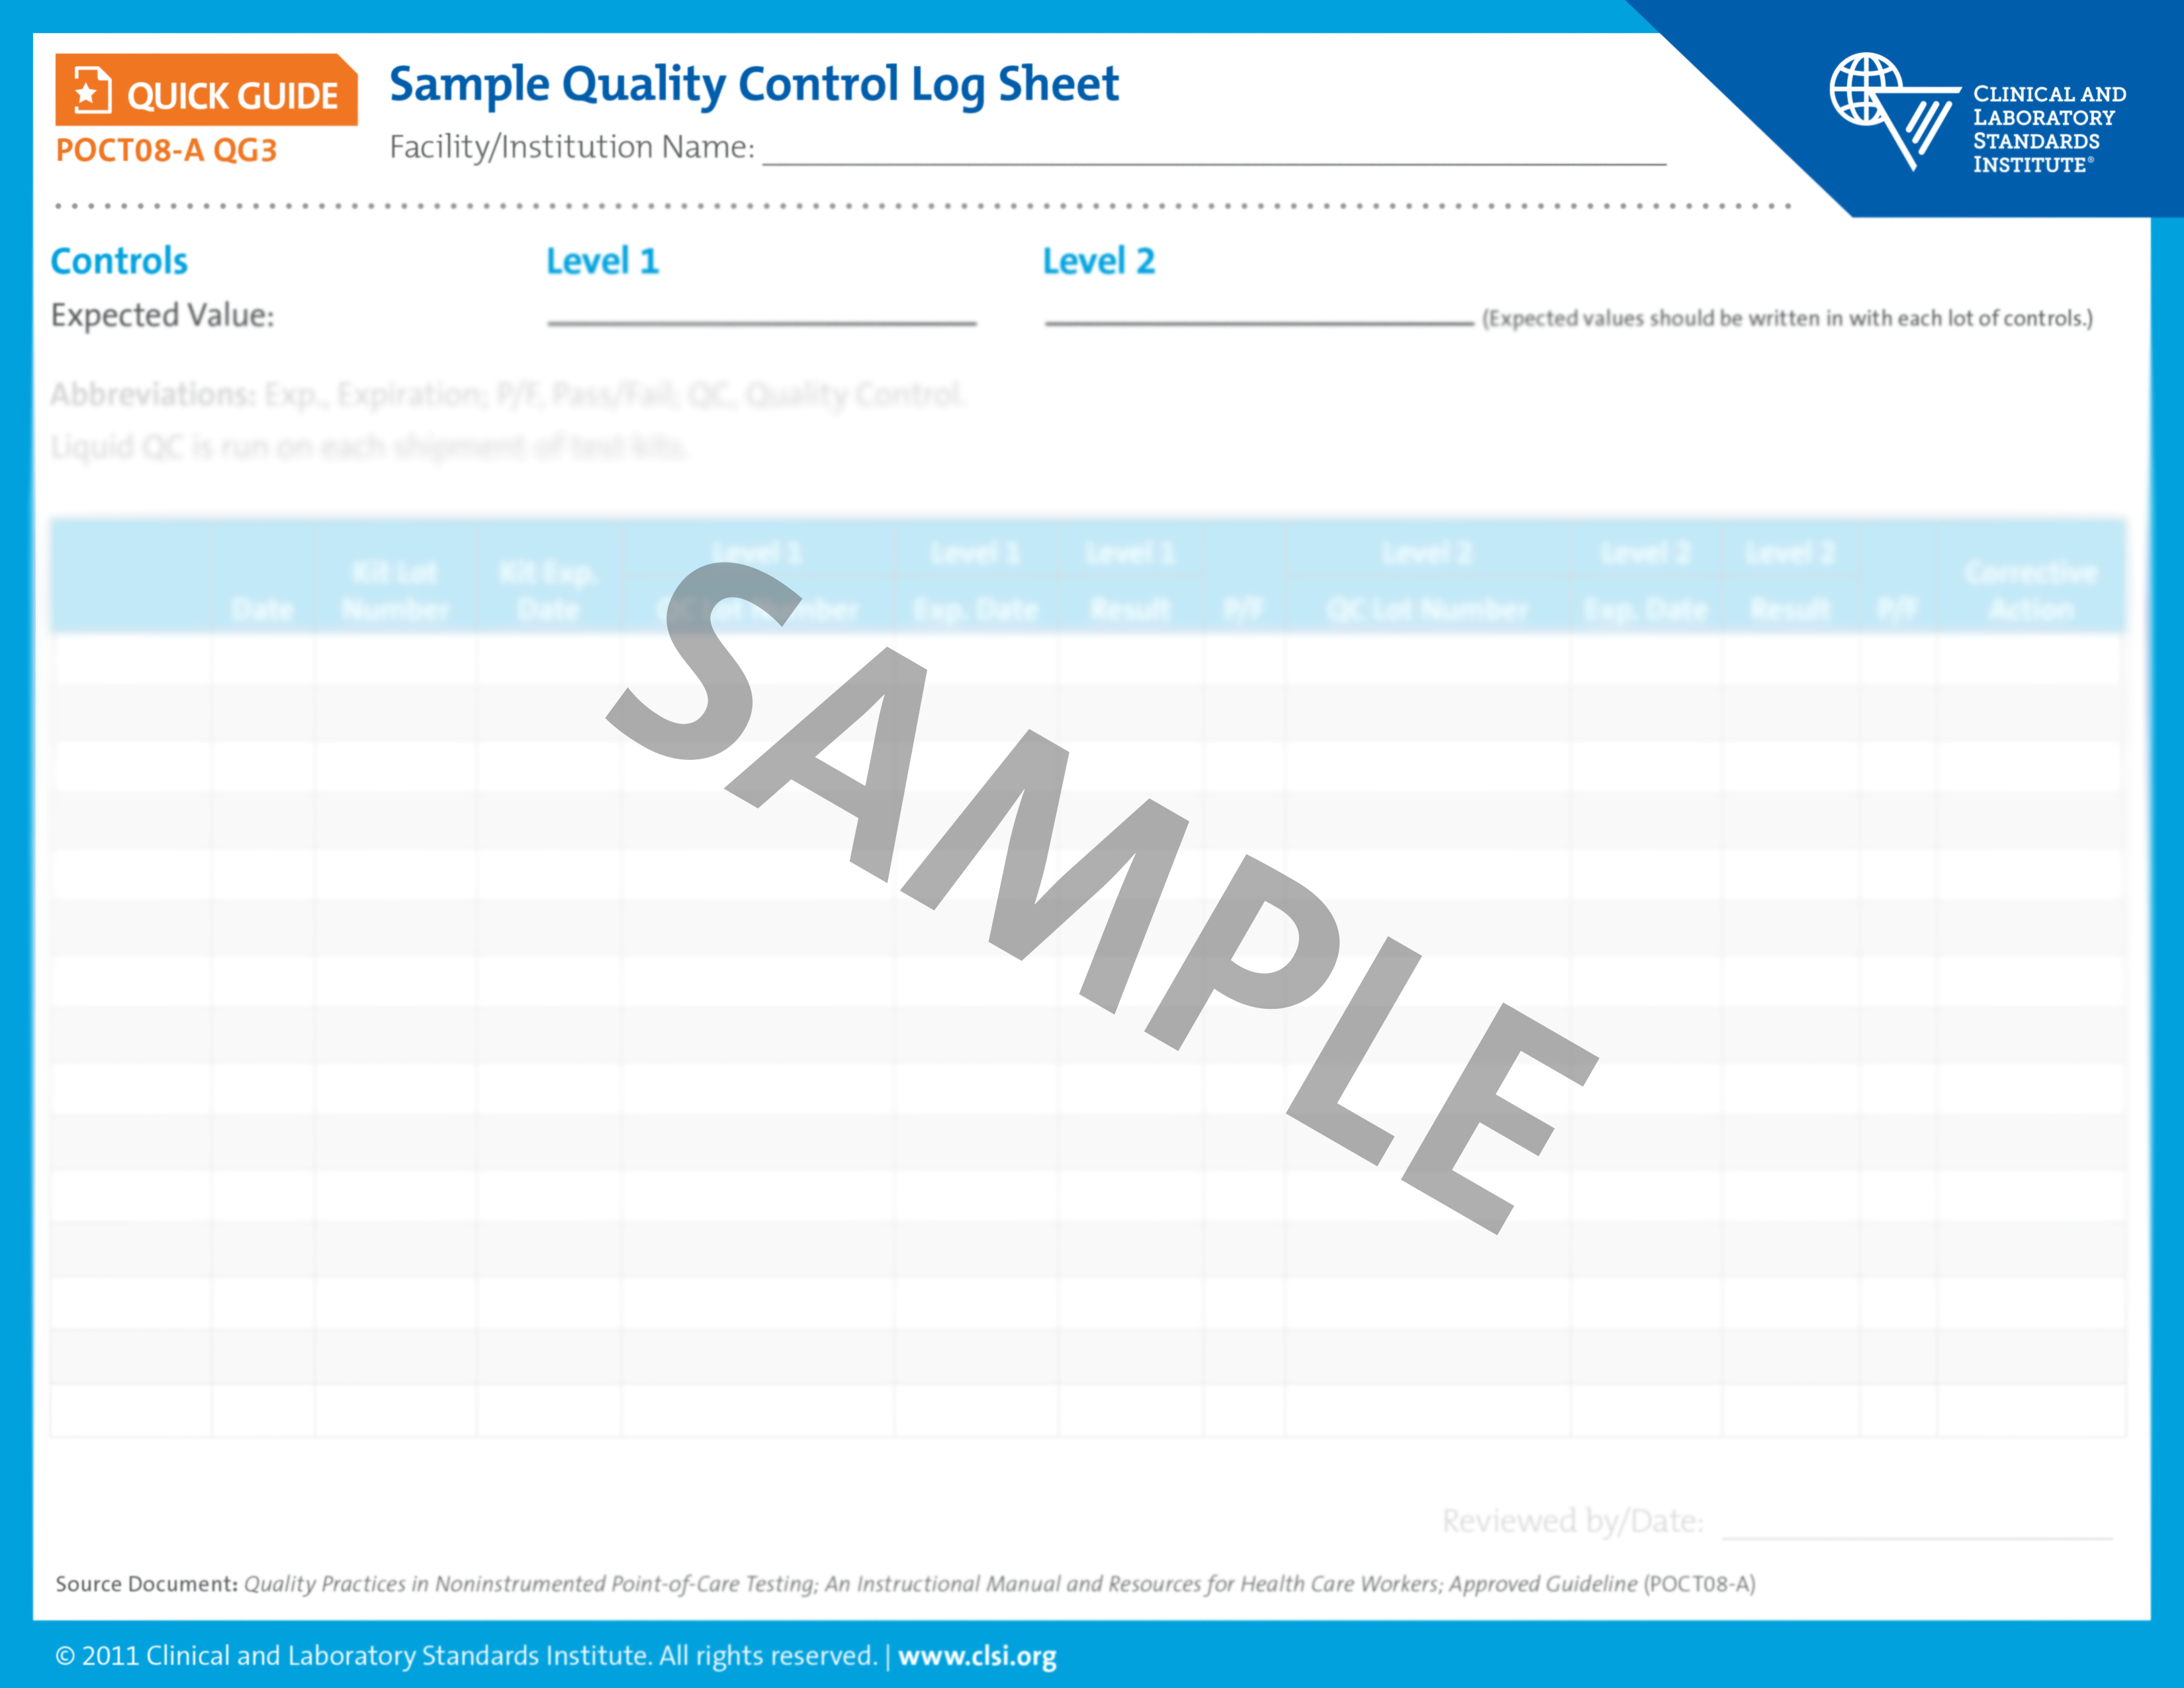 Quality Control Log Sheet Quick Guide View Sample Pages Png 3300x2550 Template